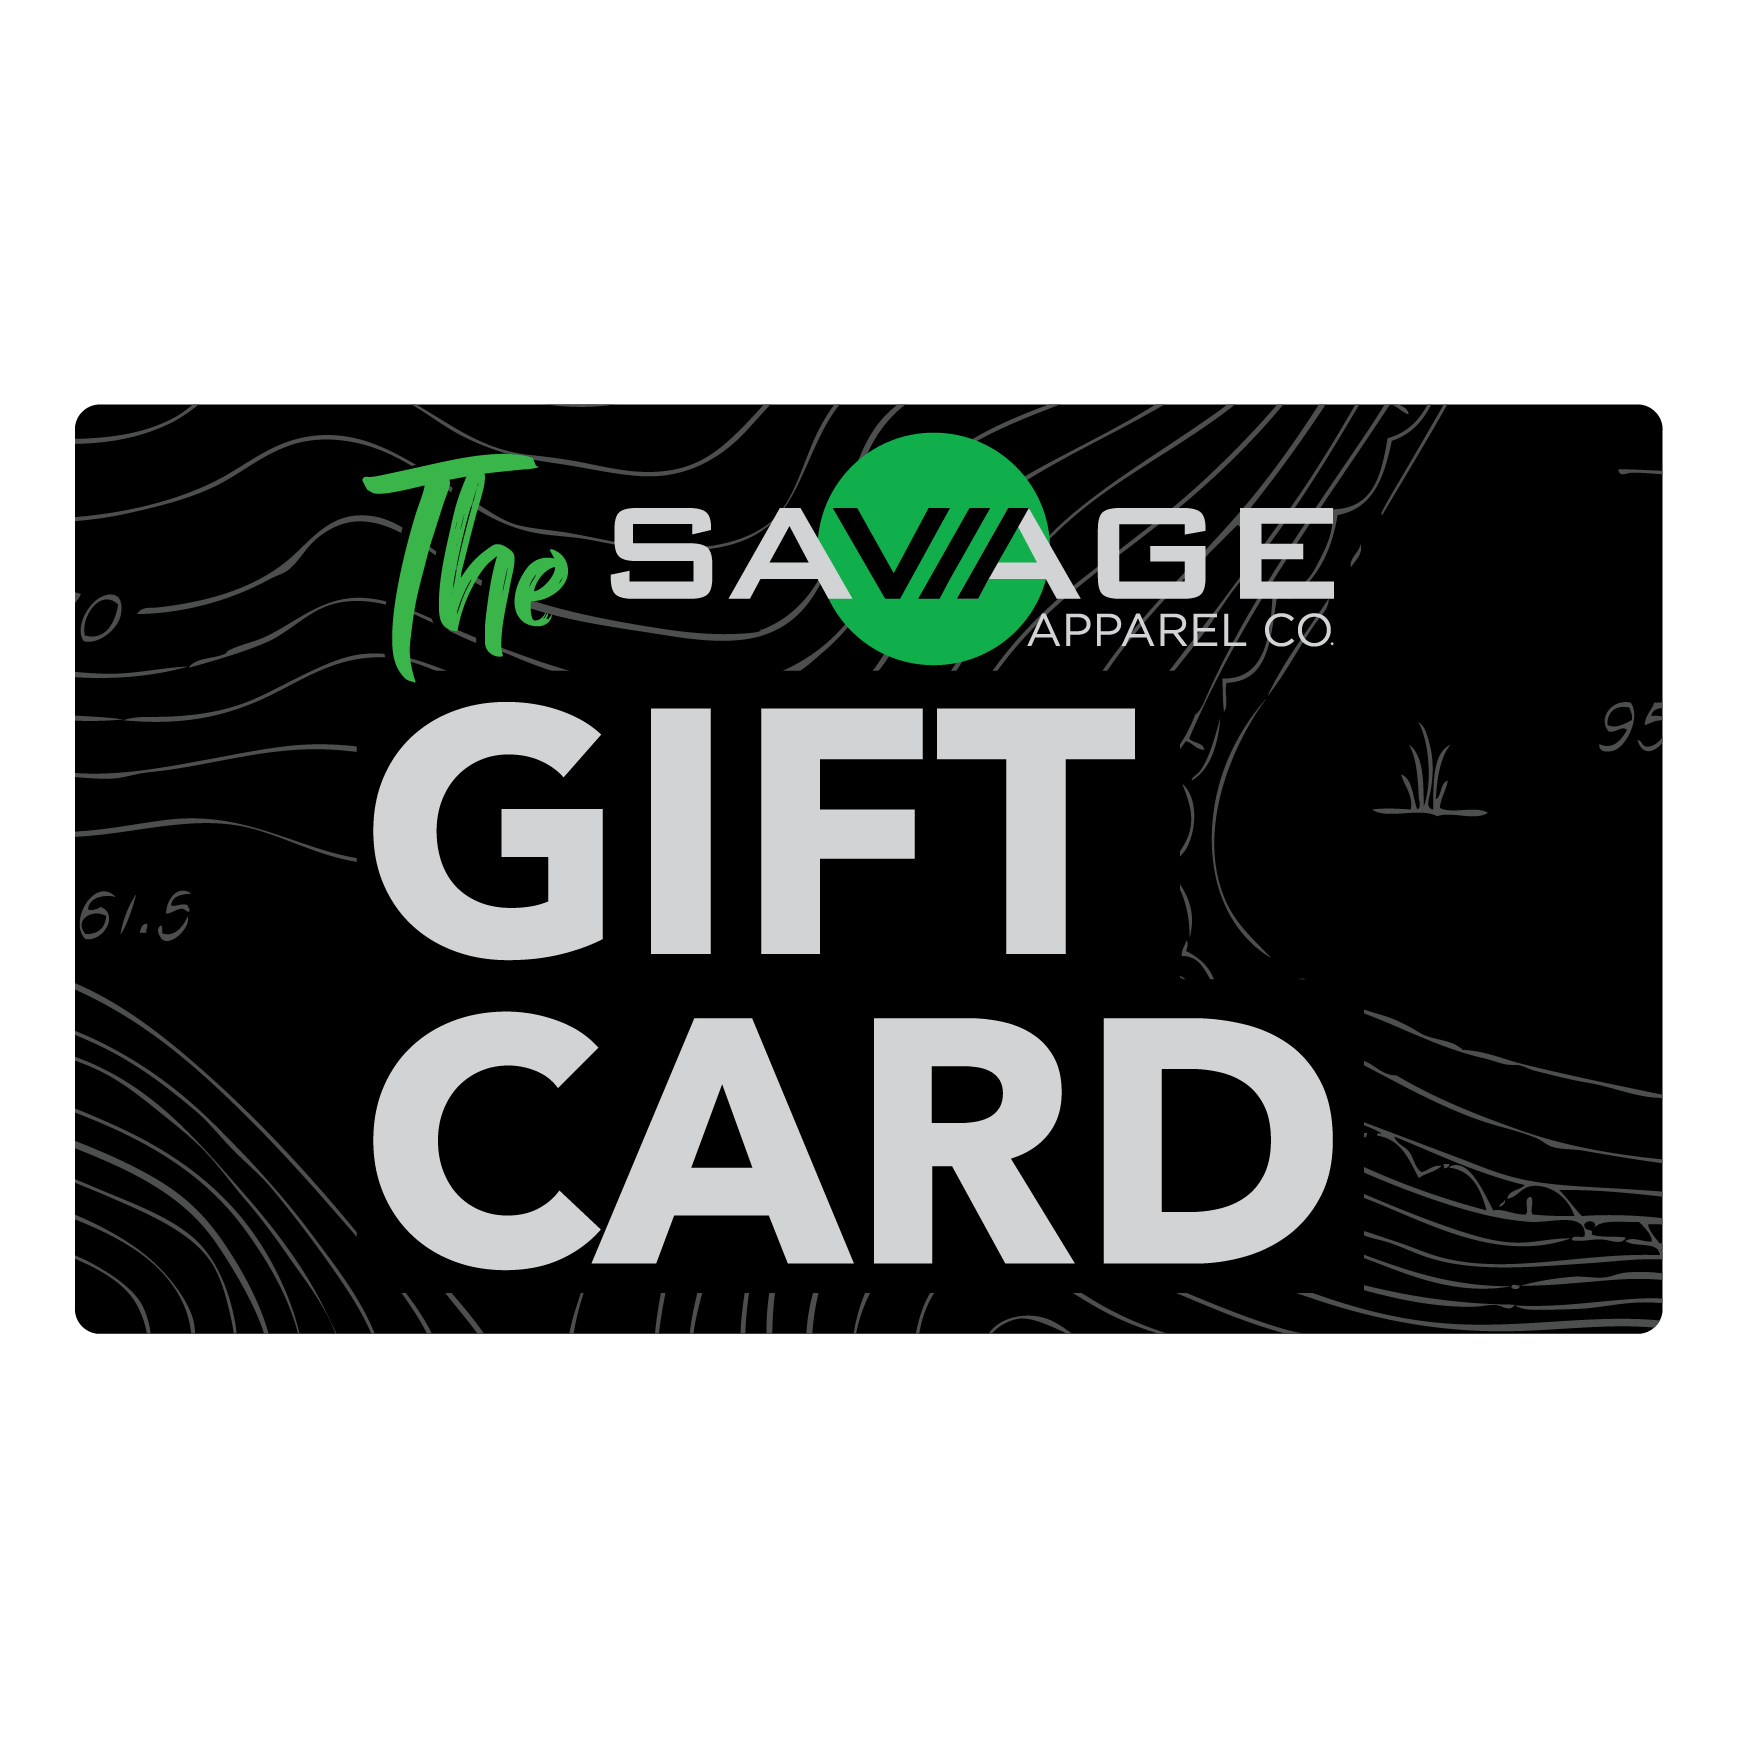 The Savage Gift Card (real card)